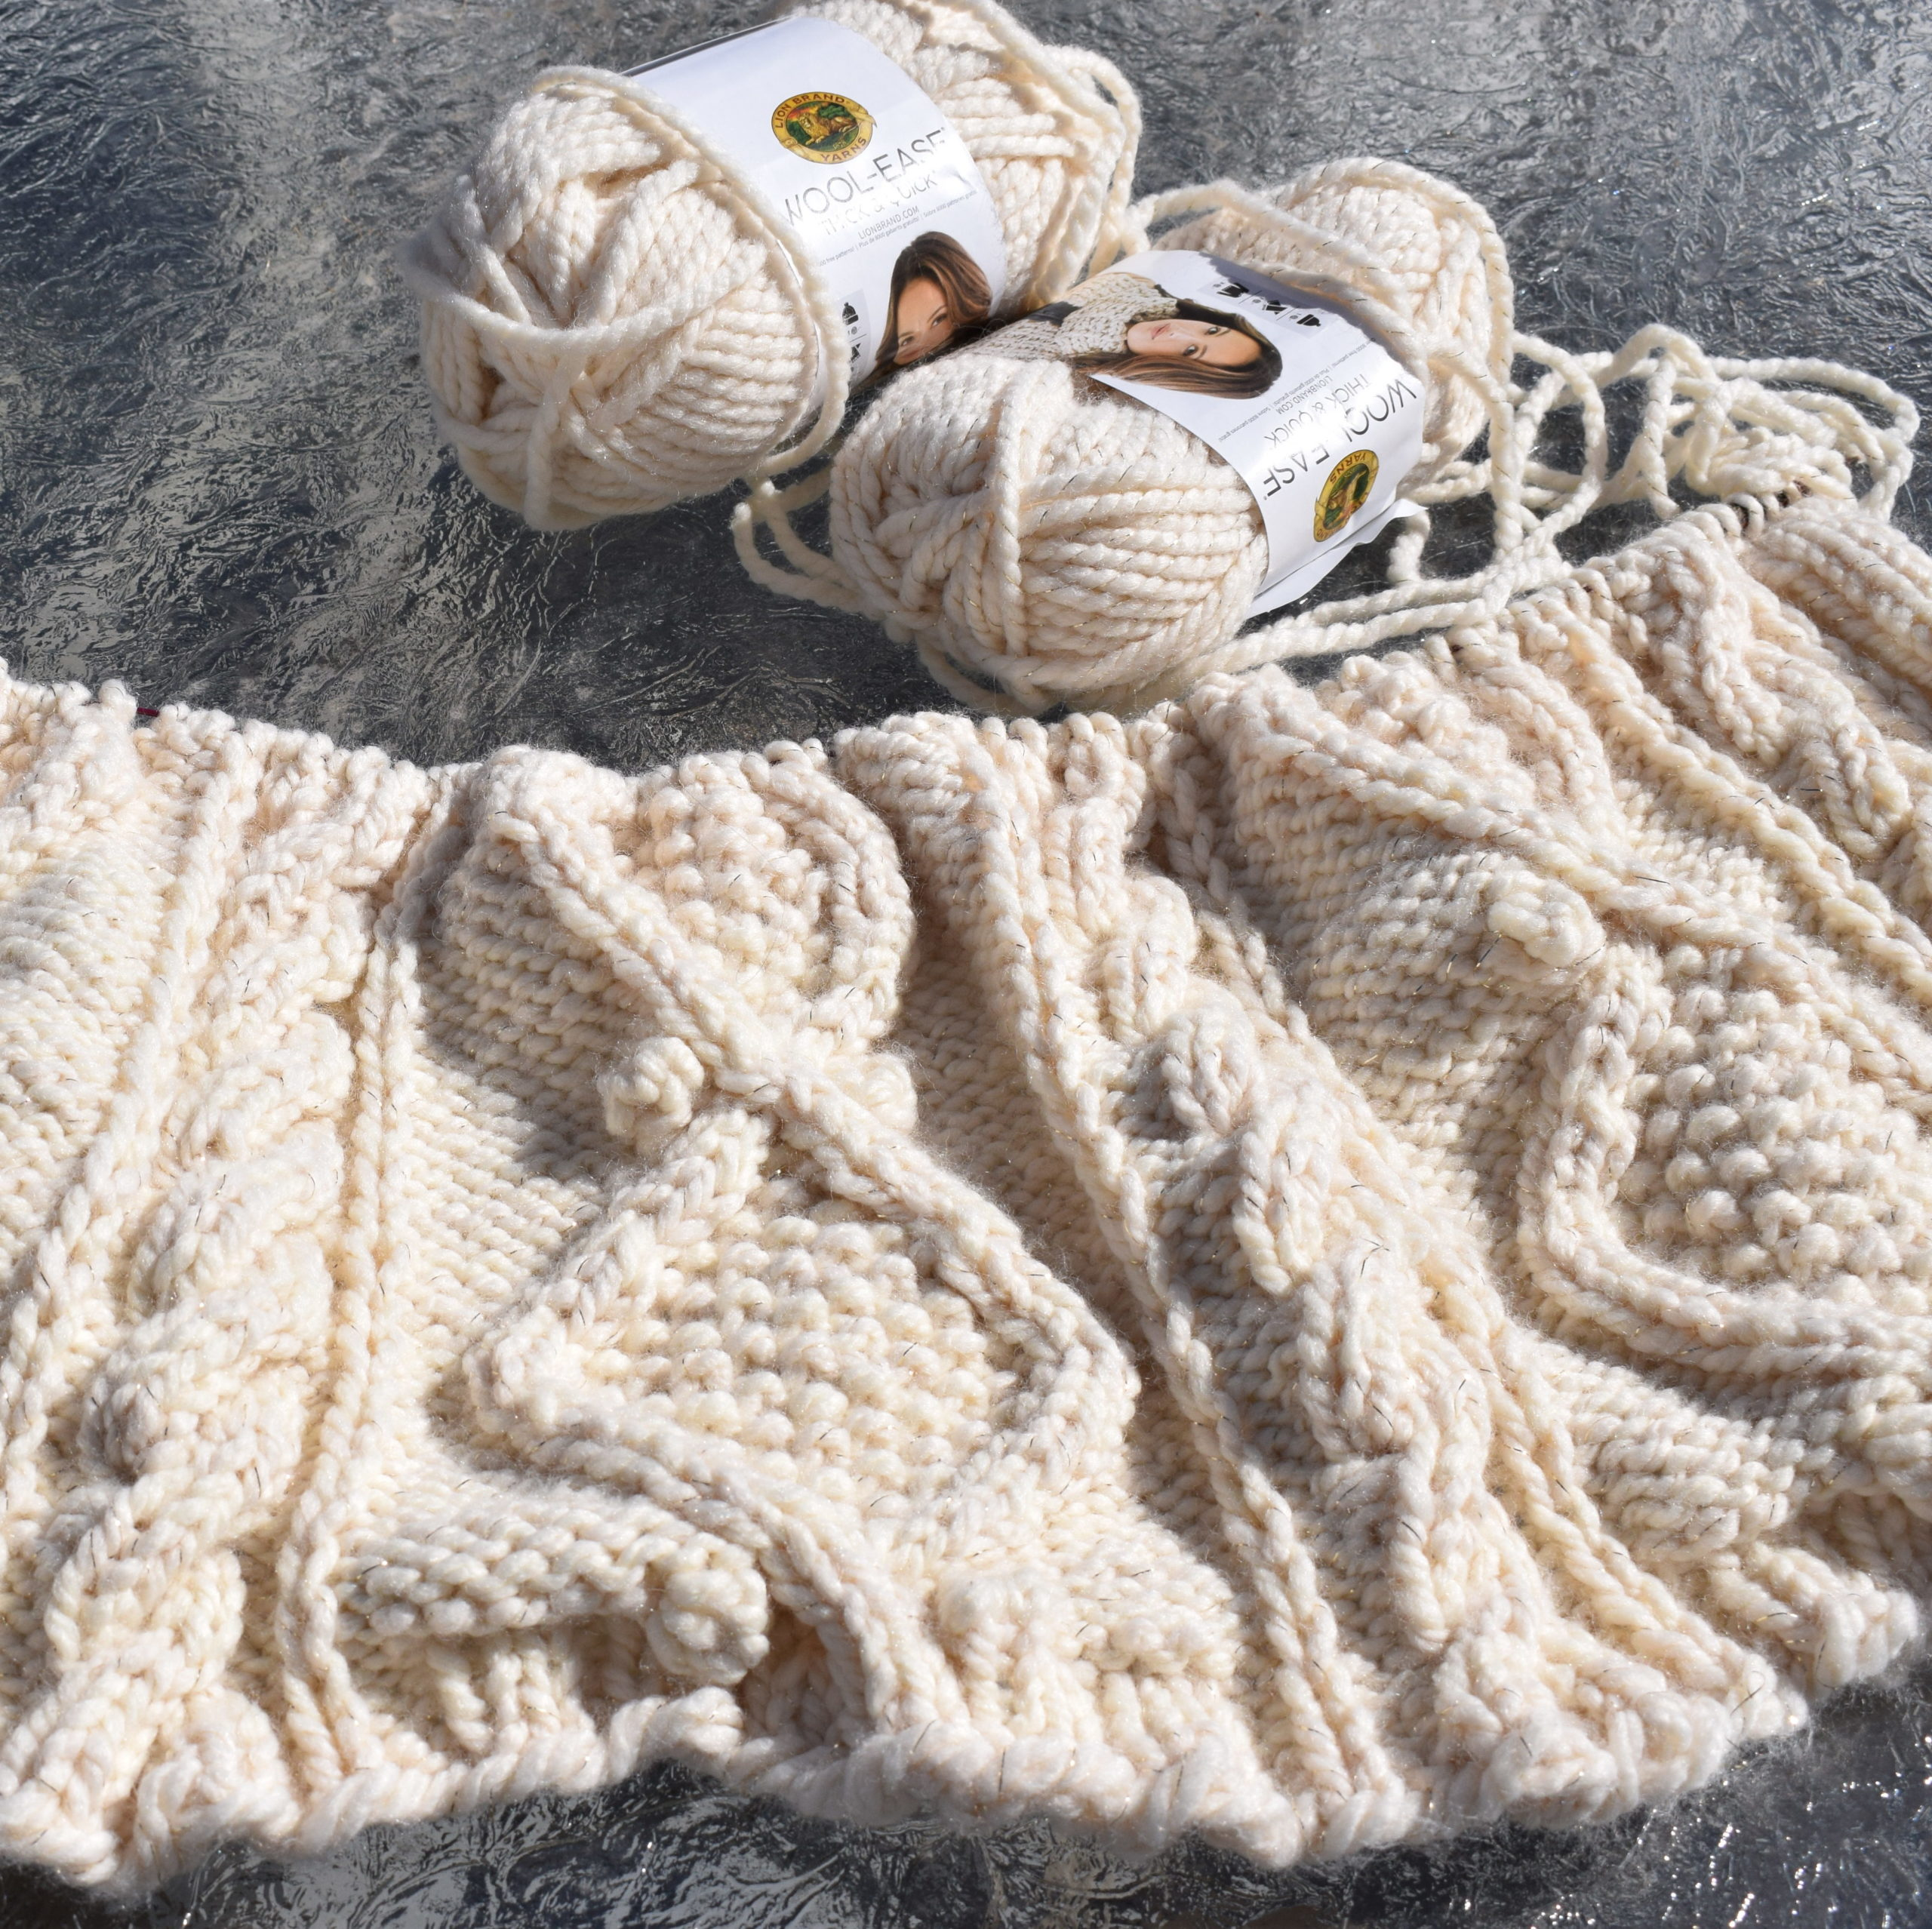 A partially-completed, deeply textured afghan knit in a bulky cream yarn.  Squishy cables bracket stitches forming large diamonds with seed stitch centers.  Two skeins of yarn are lying next to the work.